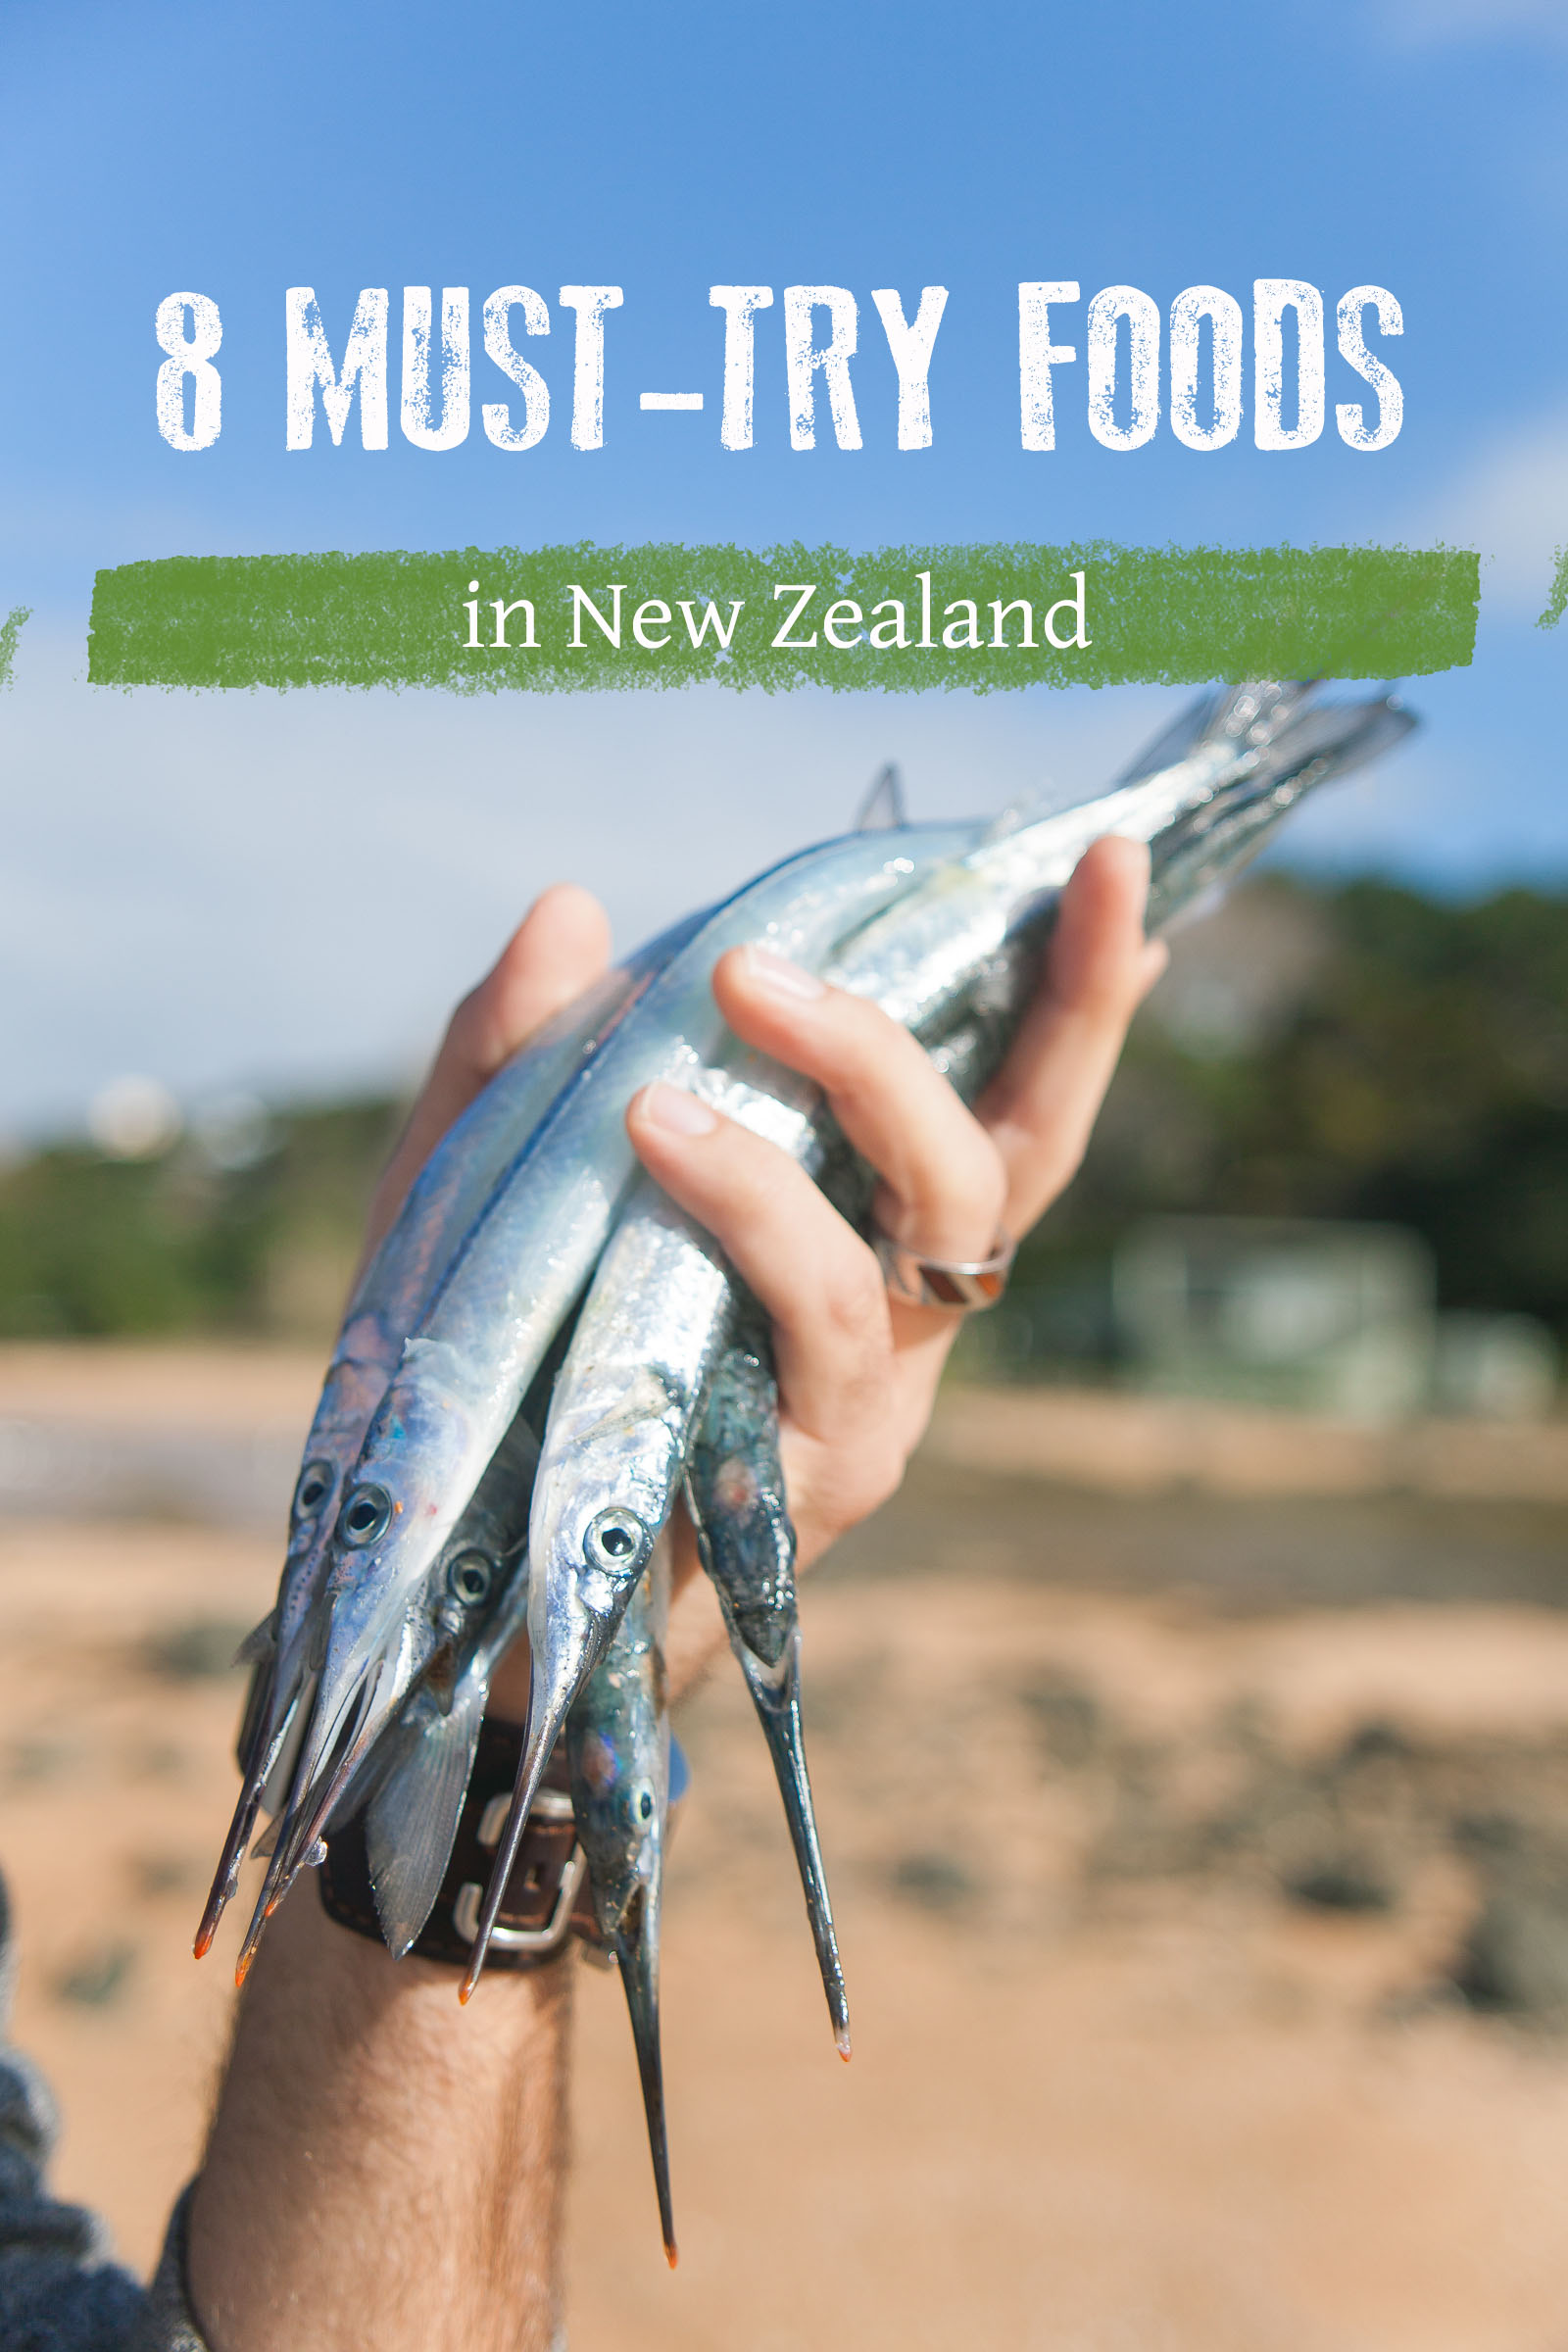 8 Must-Try Foods in New Zealand